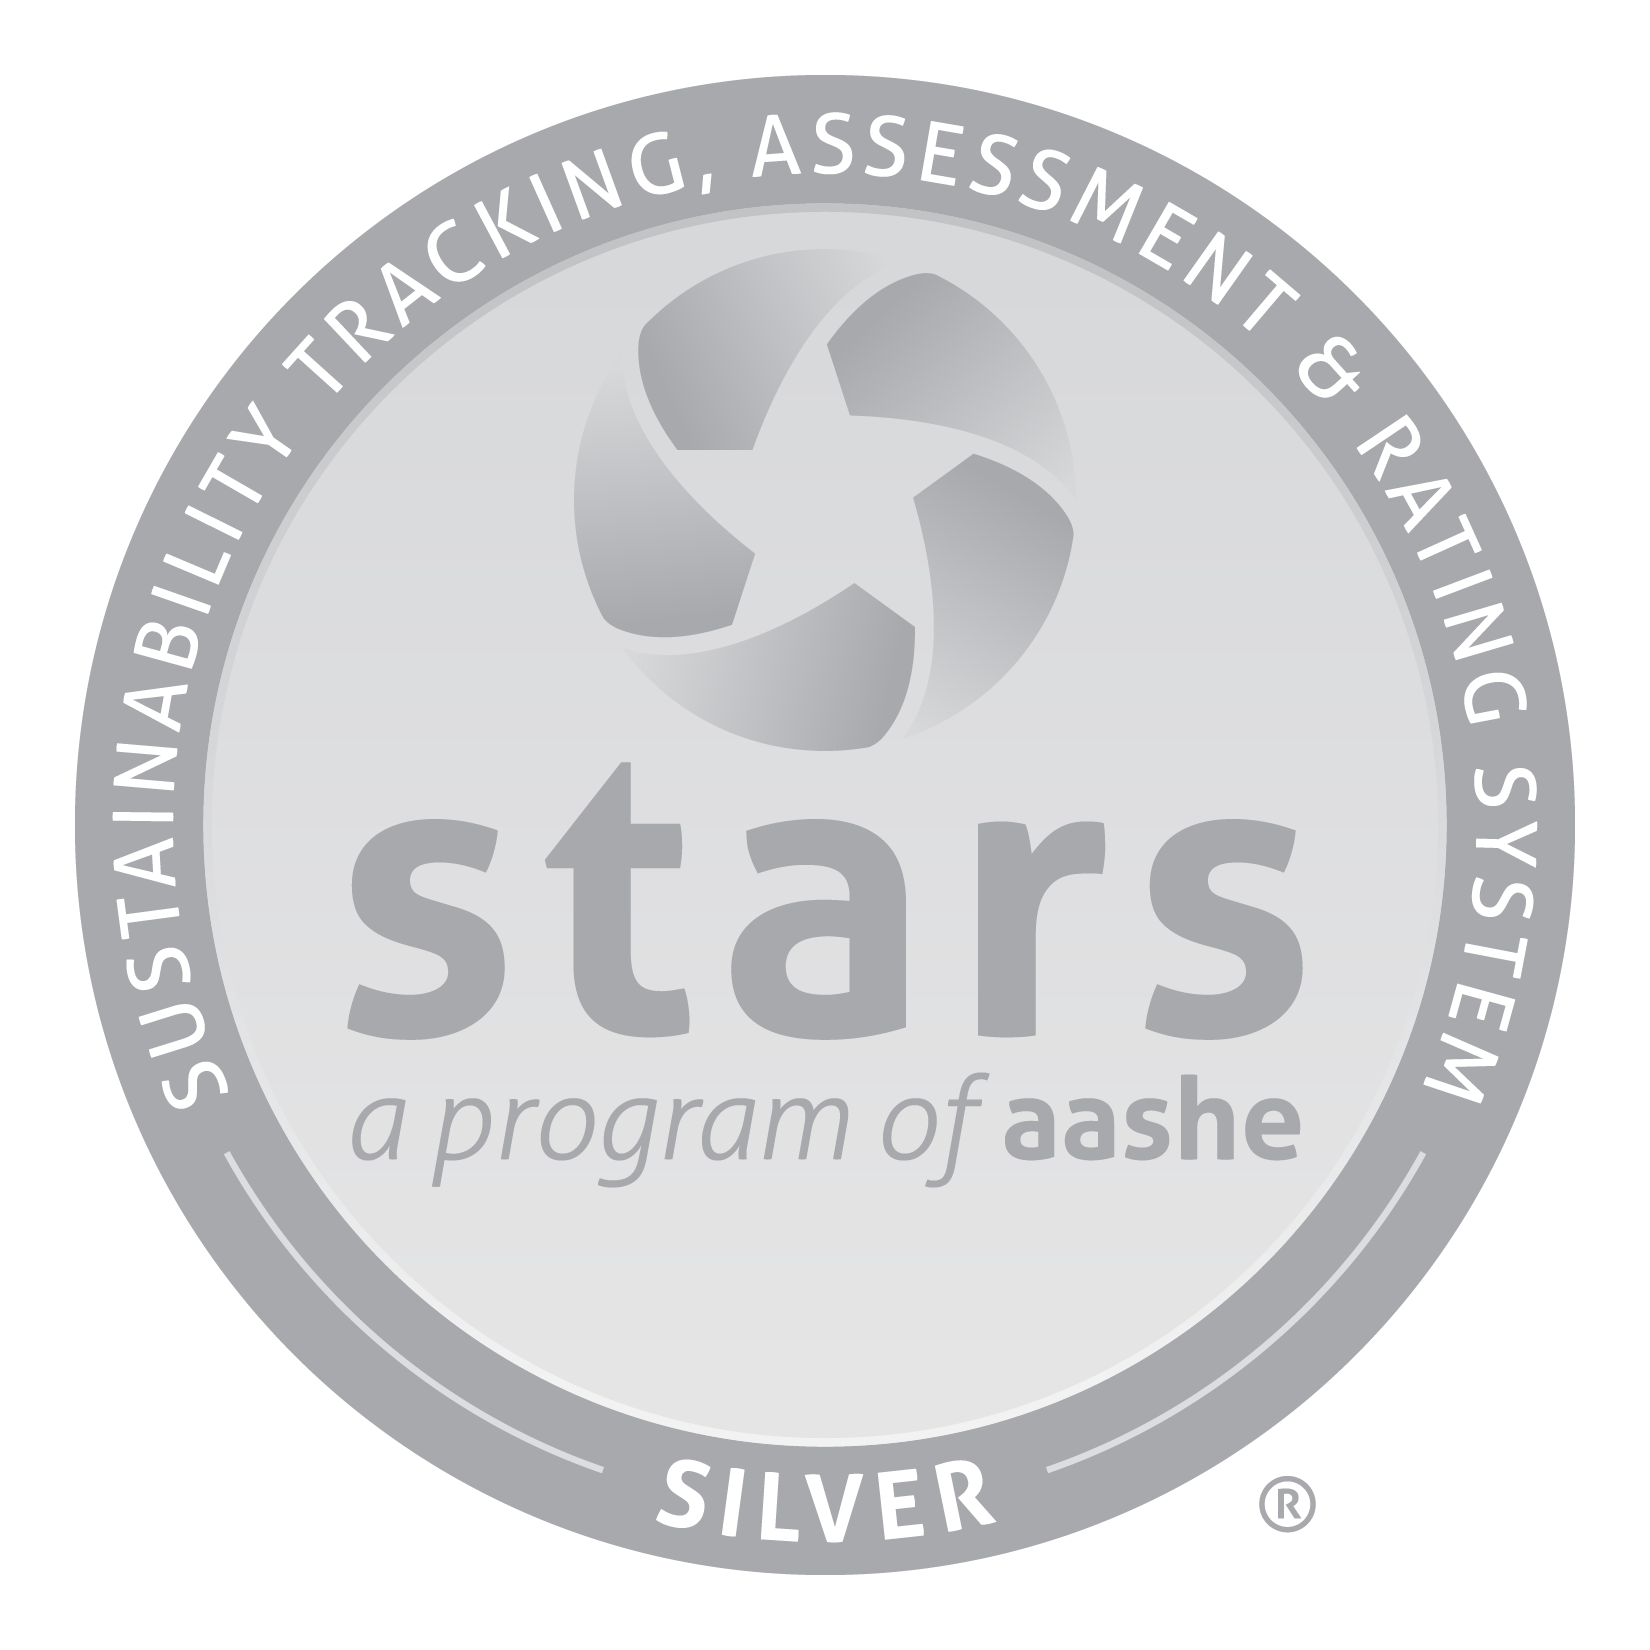 stars: a program of aashe. Sustainability tracking, assessment & rating system silver